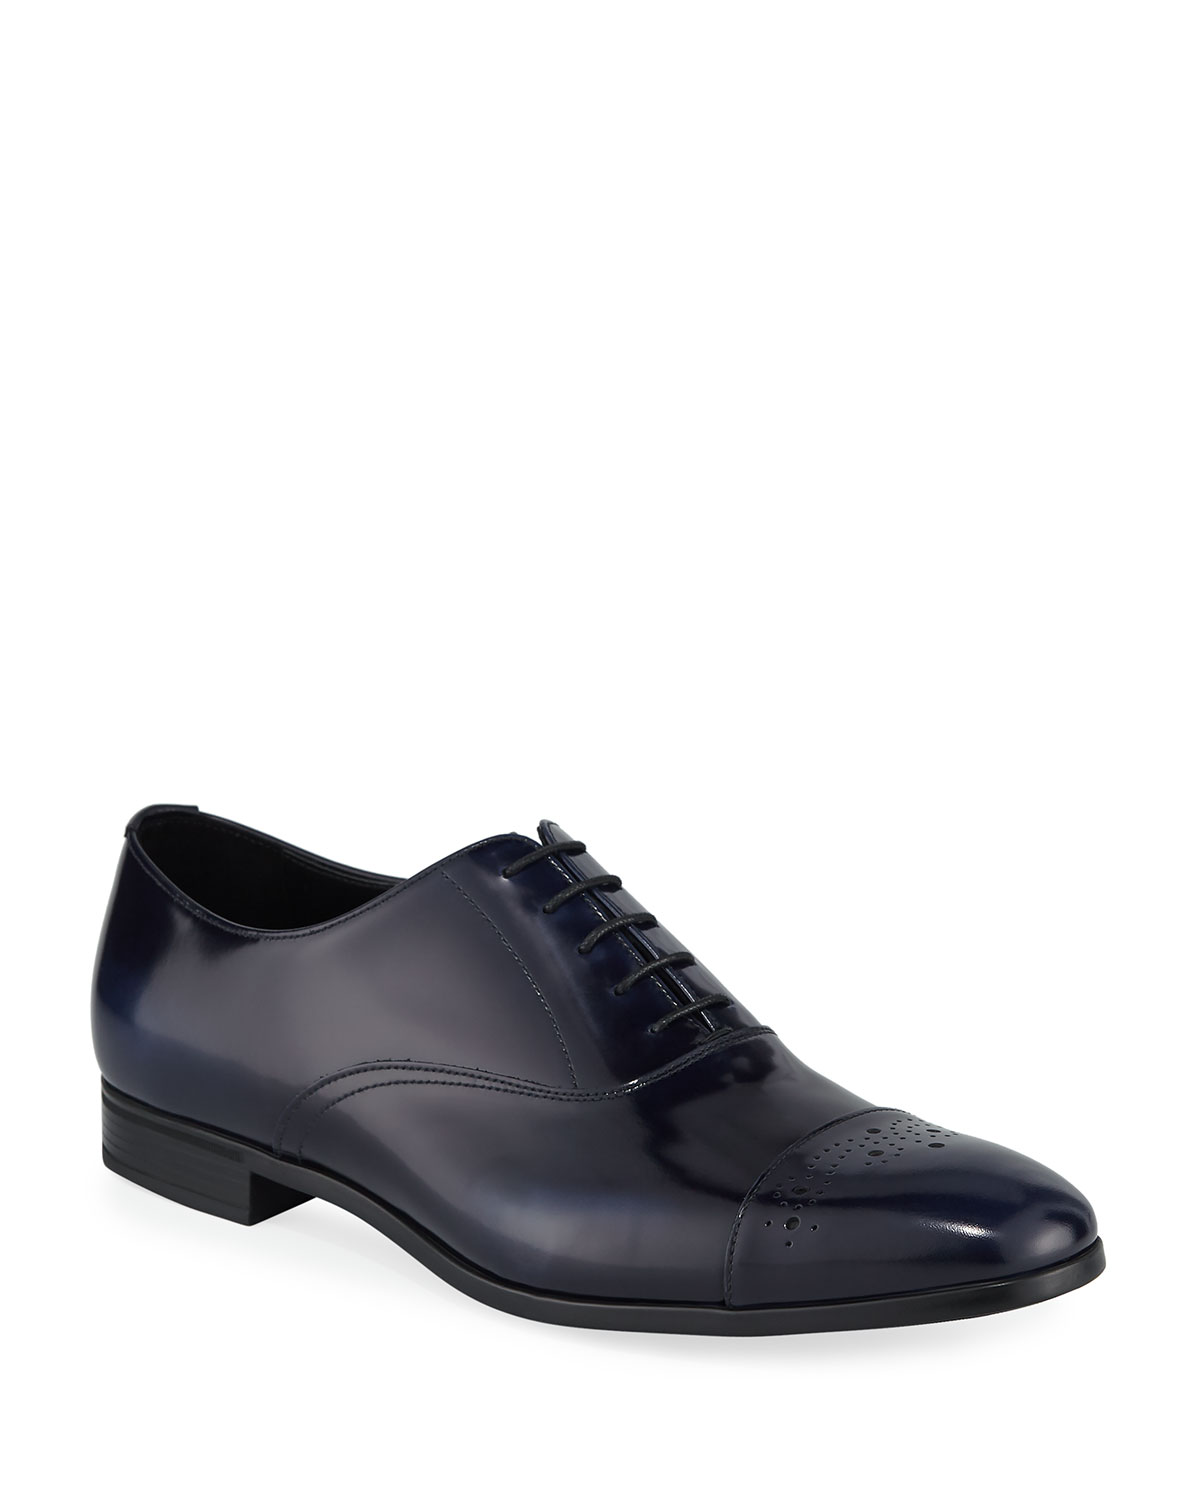 066fc68afc4 Prada Spazzolato Leather Lace-Up Oxford